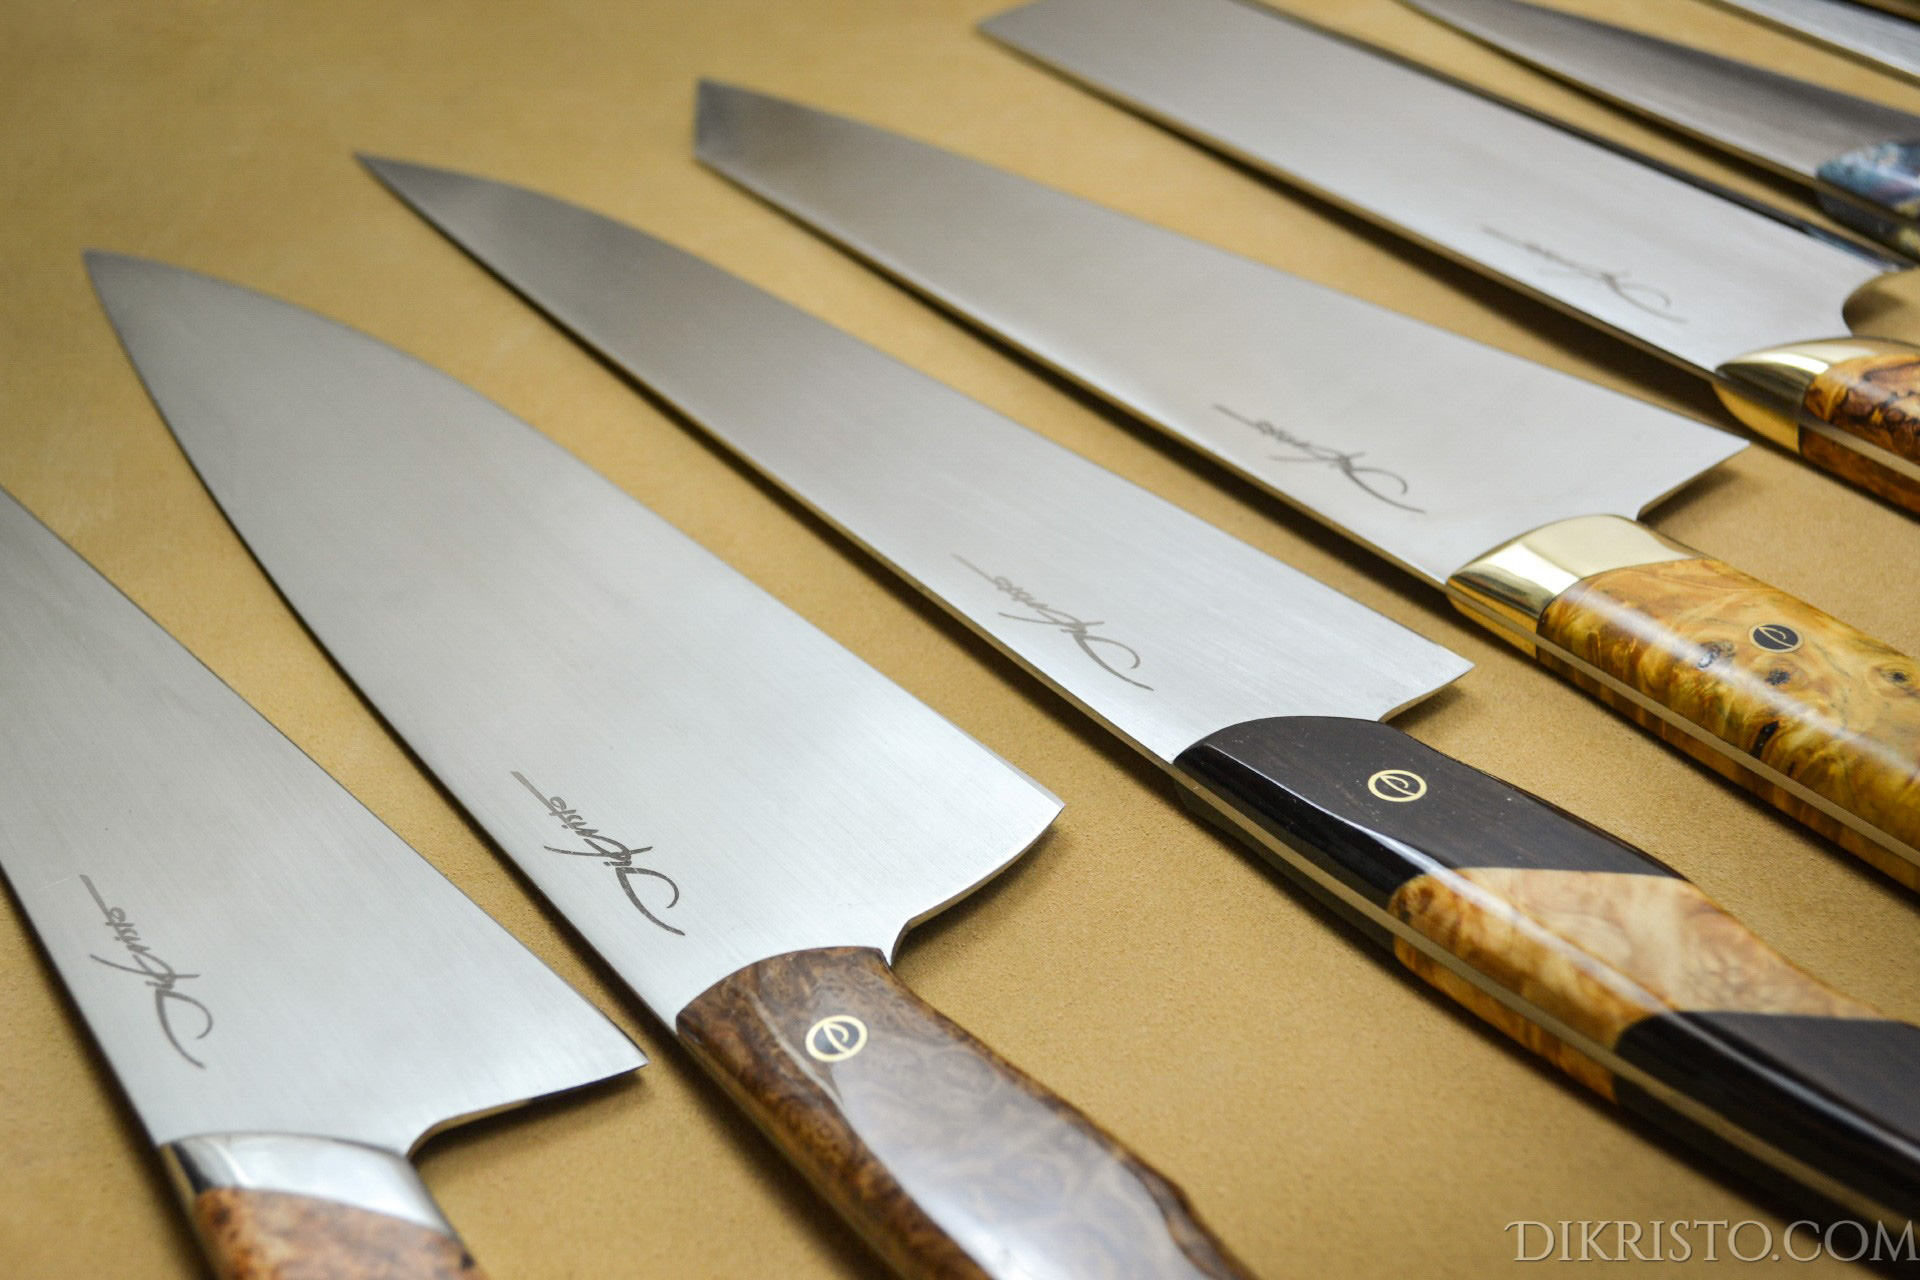 which is the best steel for kitchen knives